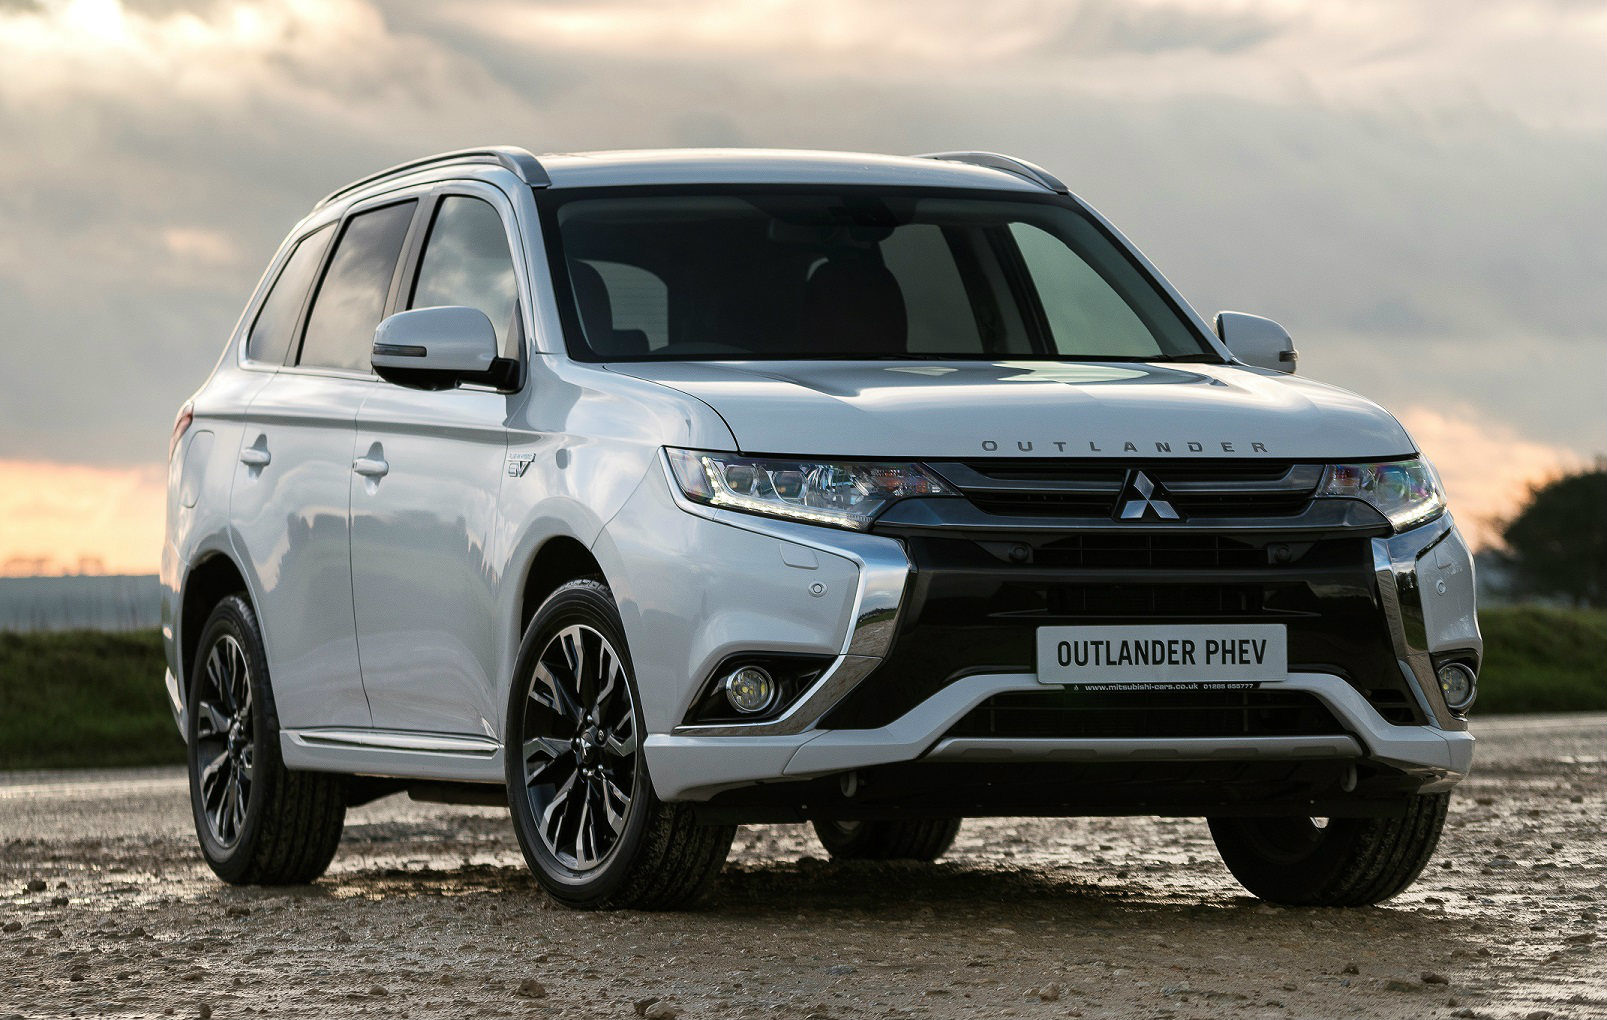 image of a silver mitsubishi ourlander phev car exterior